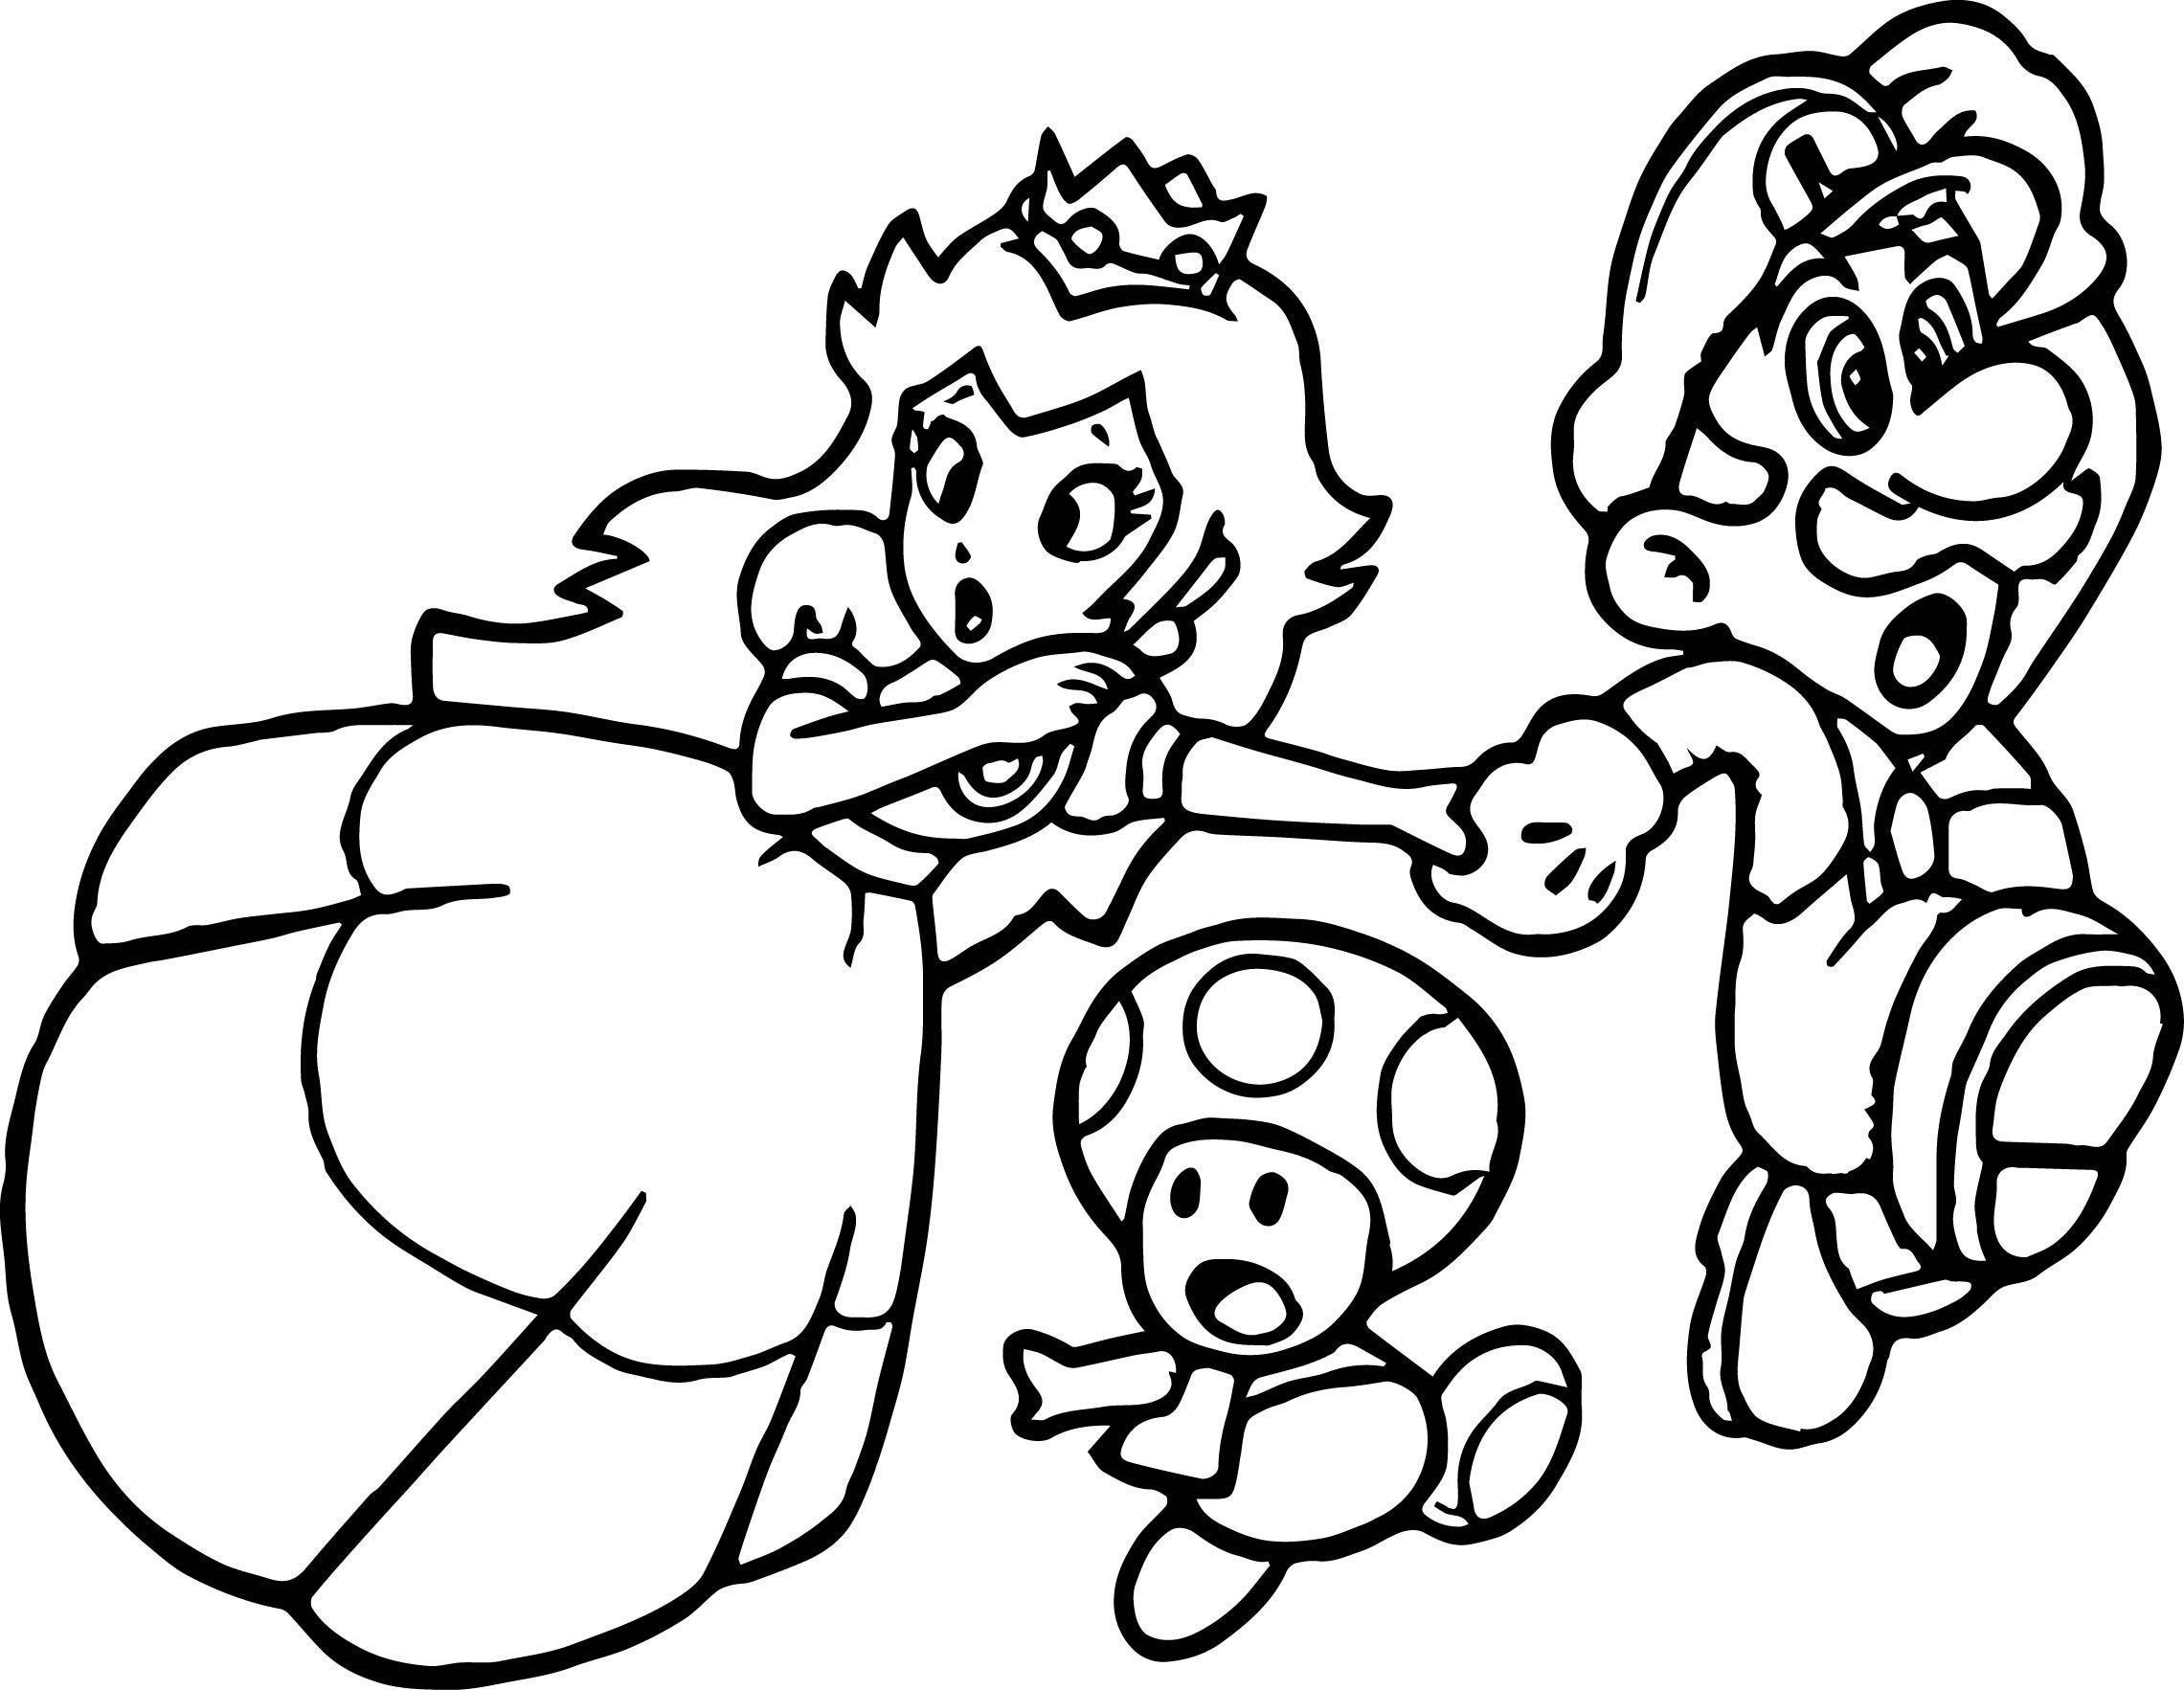 Peach And Mario Coloring Pages